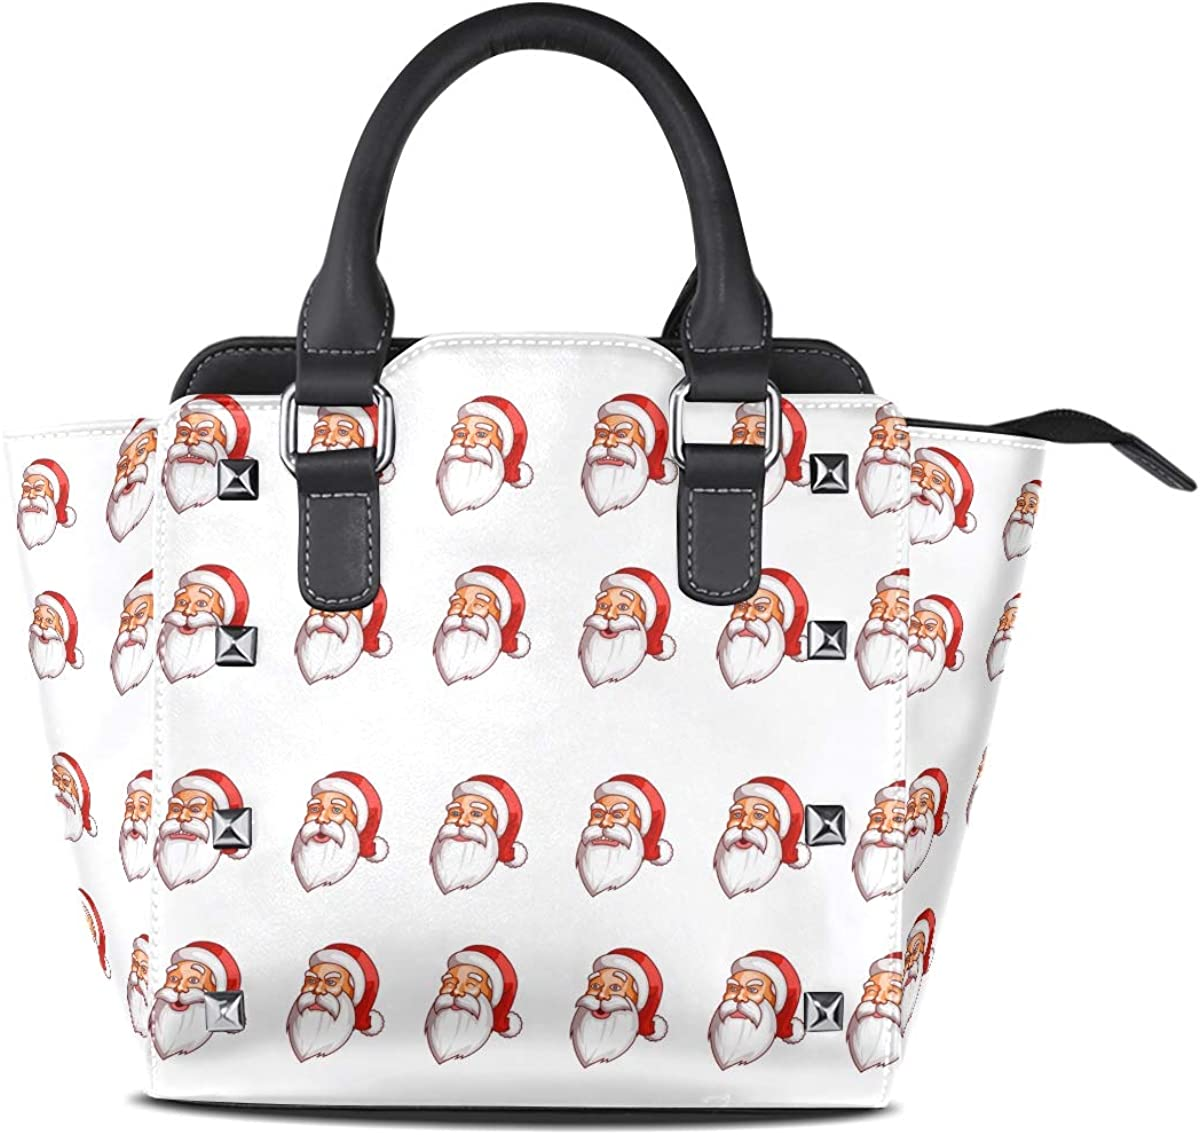 Many Expressions Of Santa Claus Women Top Handle Satchel Handbags Shoulder Bag Tote Purse Messenger Bags